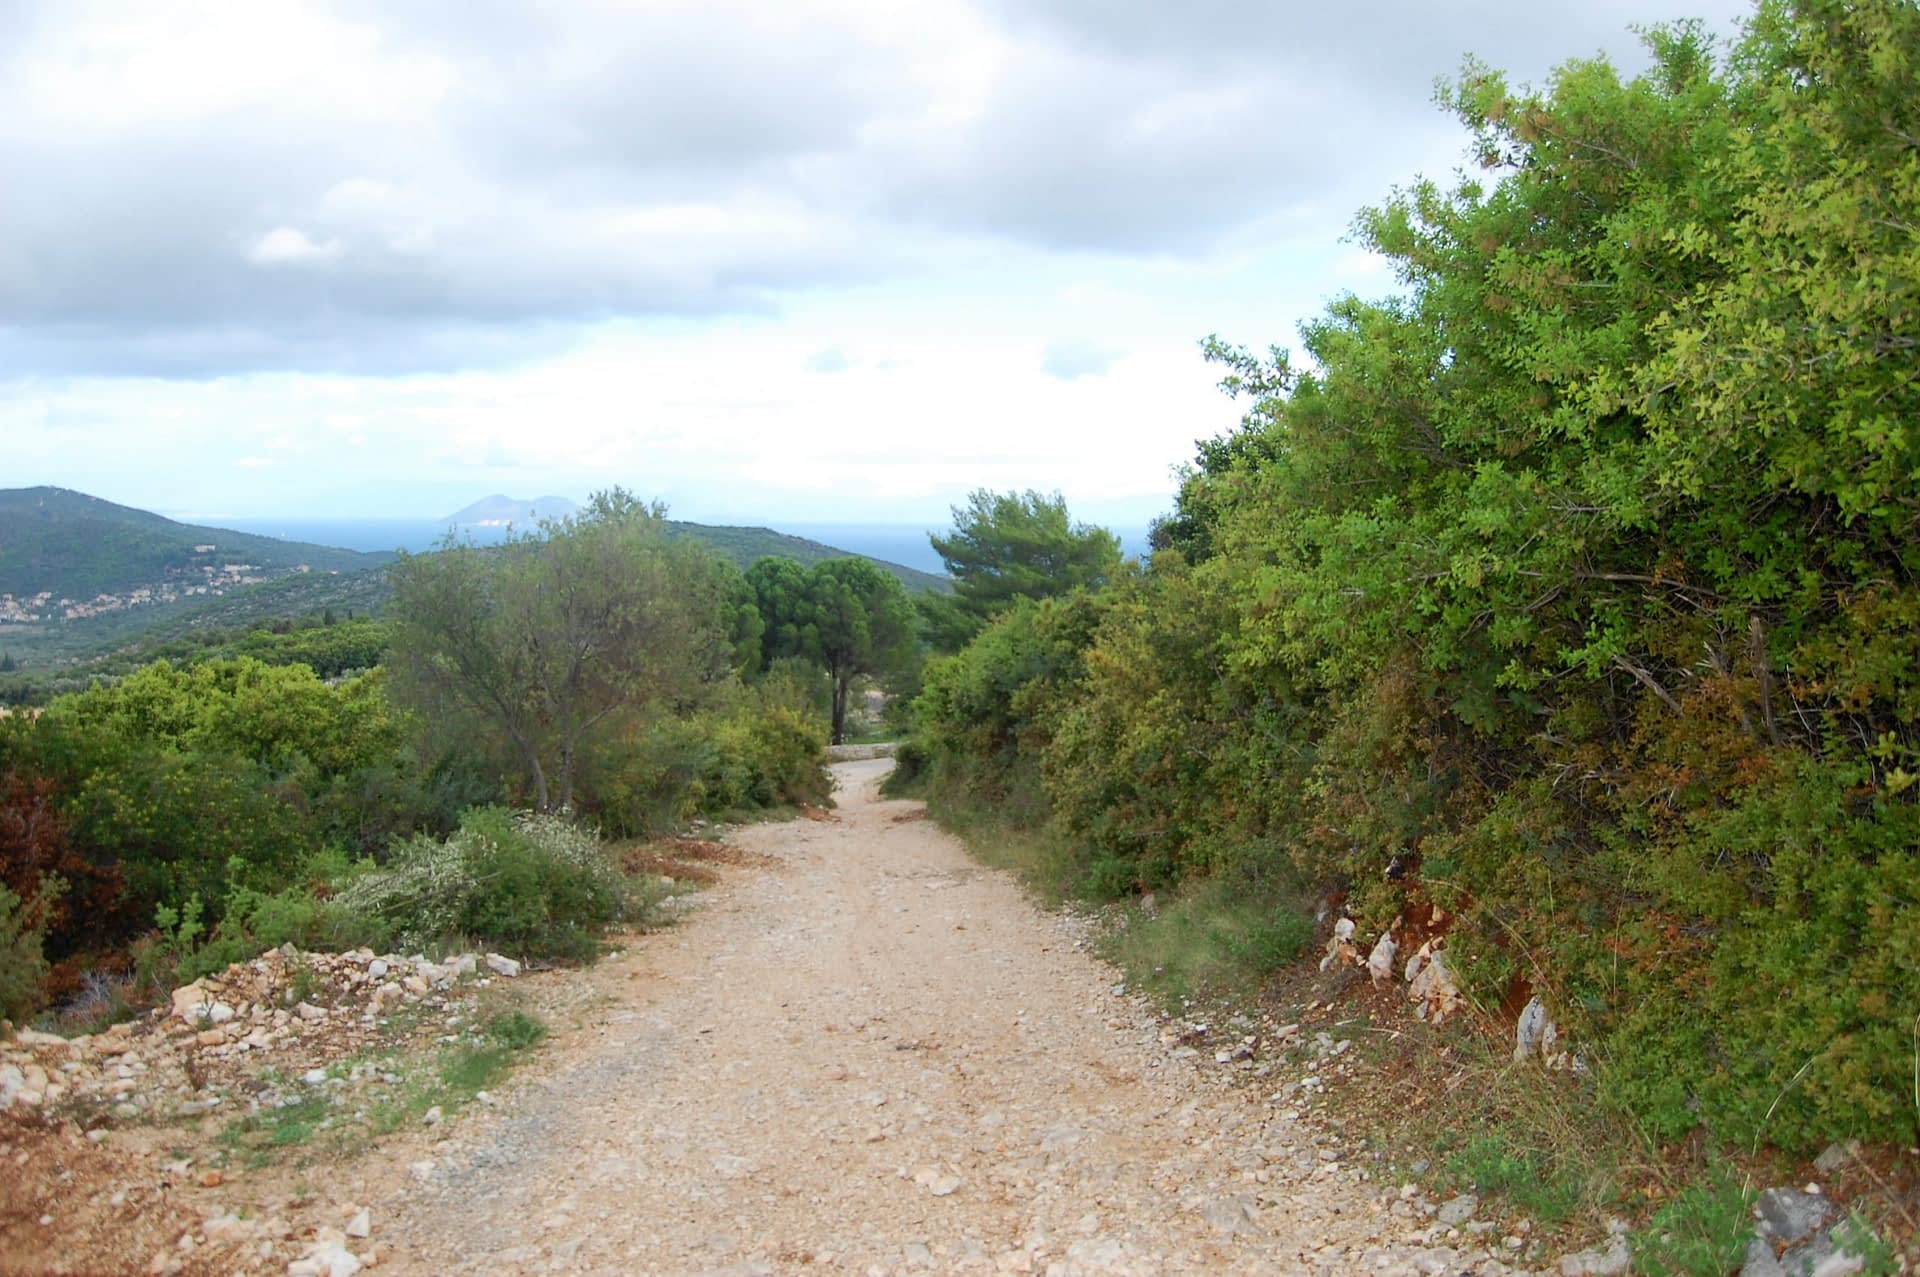 Terrain of landscape of land for sale Ithaca Greece Perachori